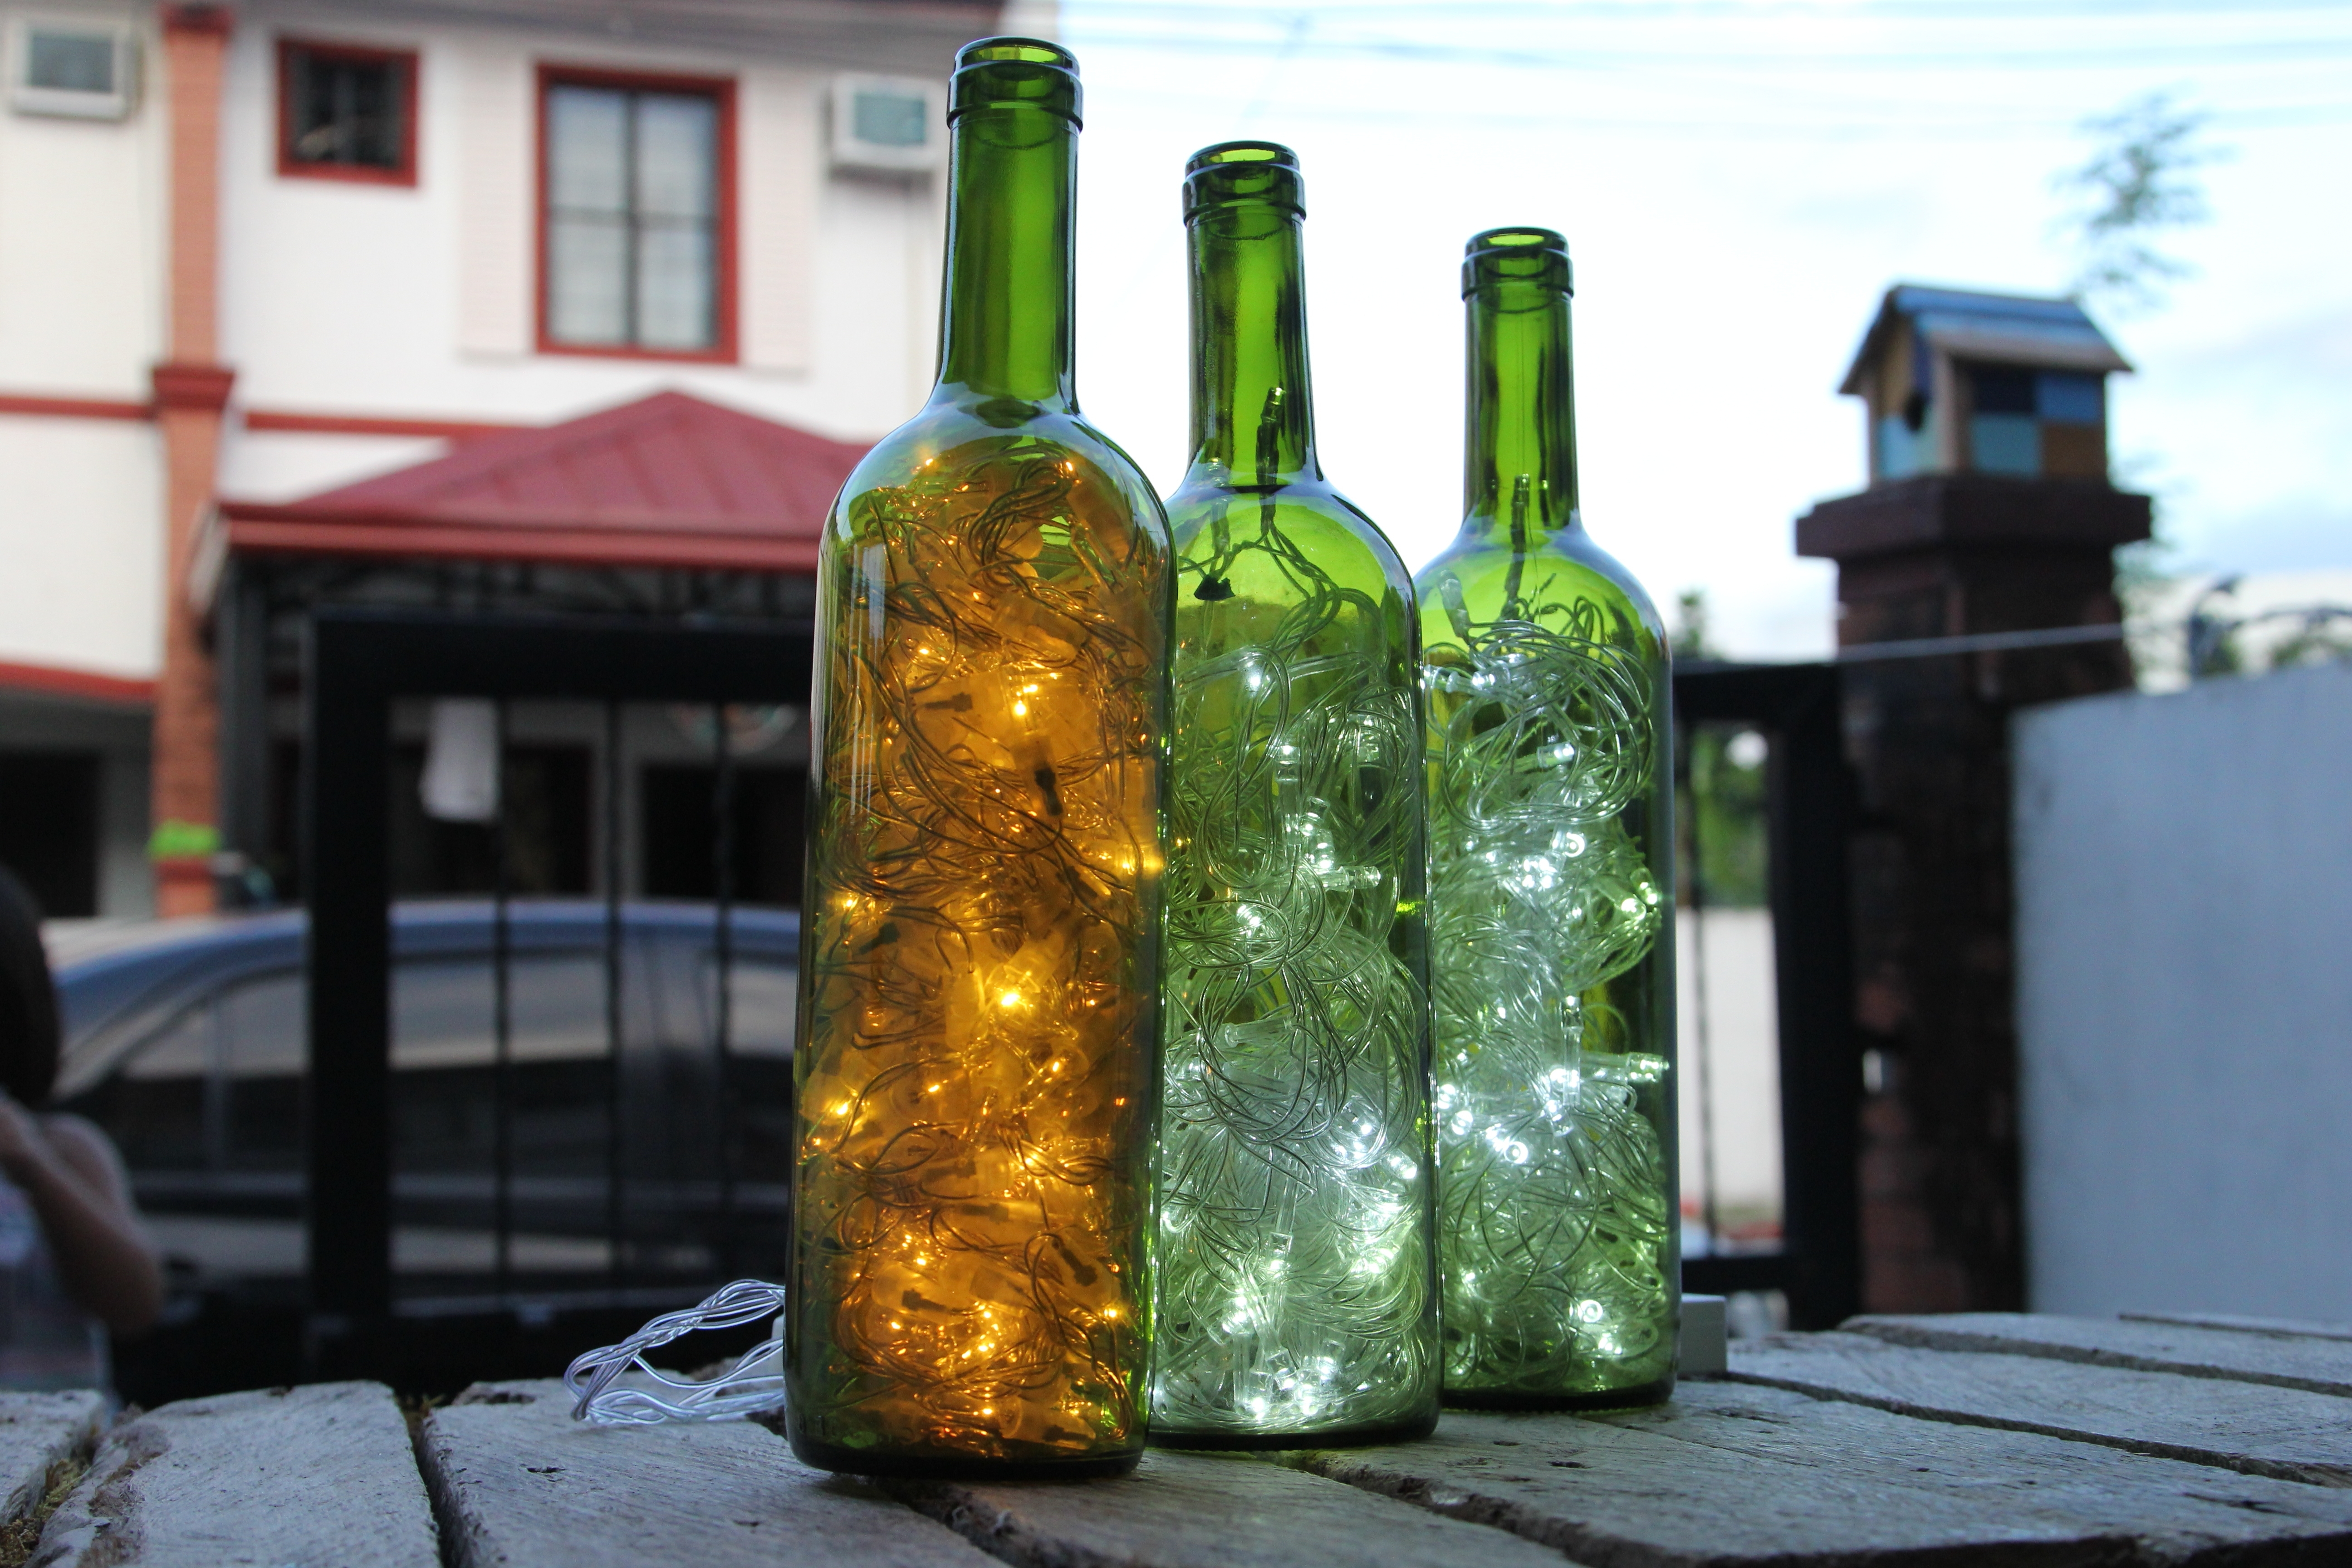 Making Outdoor Hanging Lights From Wine Bottles Intended For Latest How To Make Wine Bottle Accent Lights: 15 Steps (With Pictures) (View 15 of 20)